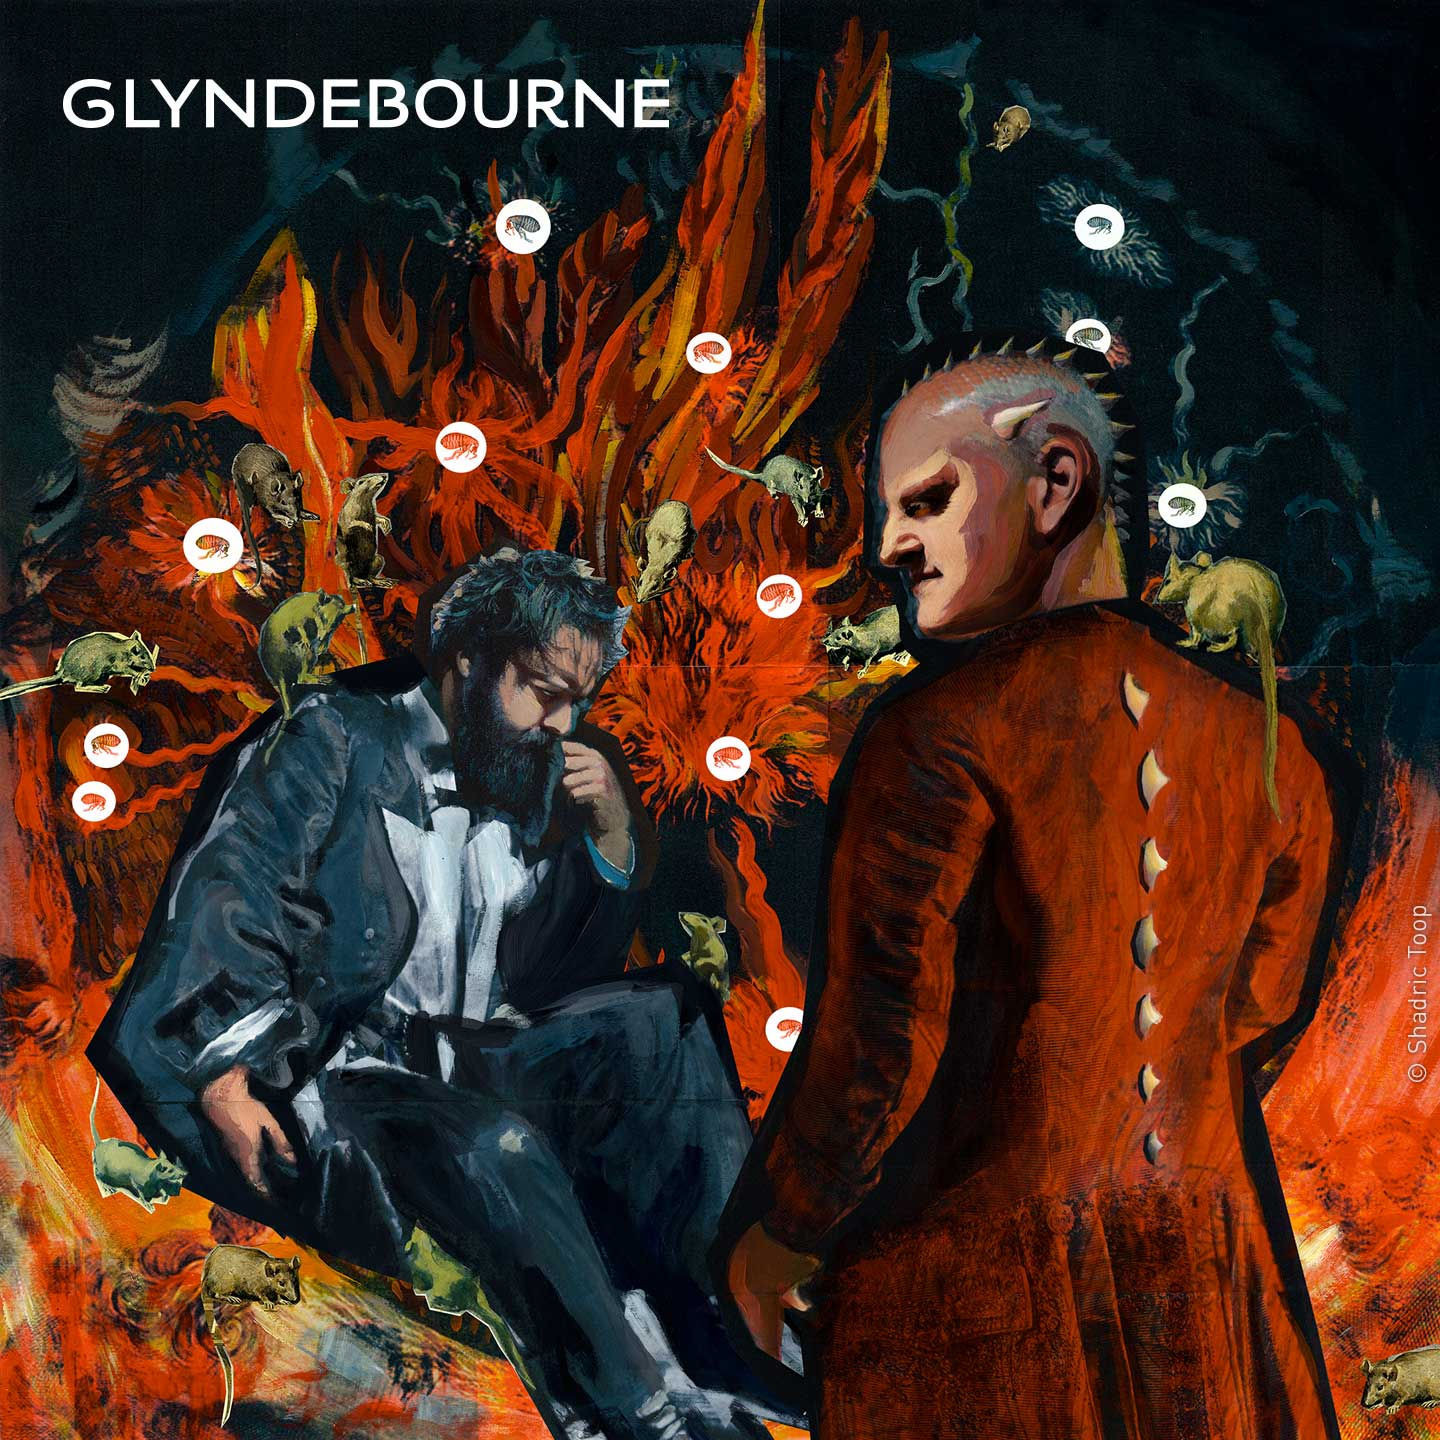 Glyndebourne Festival 2019 La damnation de Faust illustration painted collage showing Faust and the devil with fire and rats